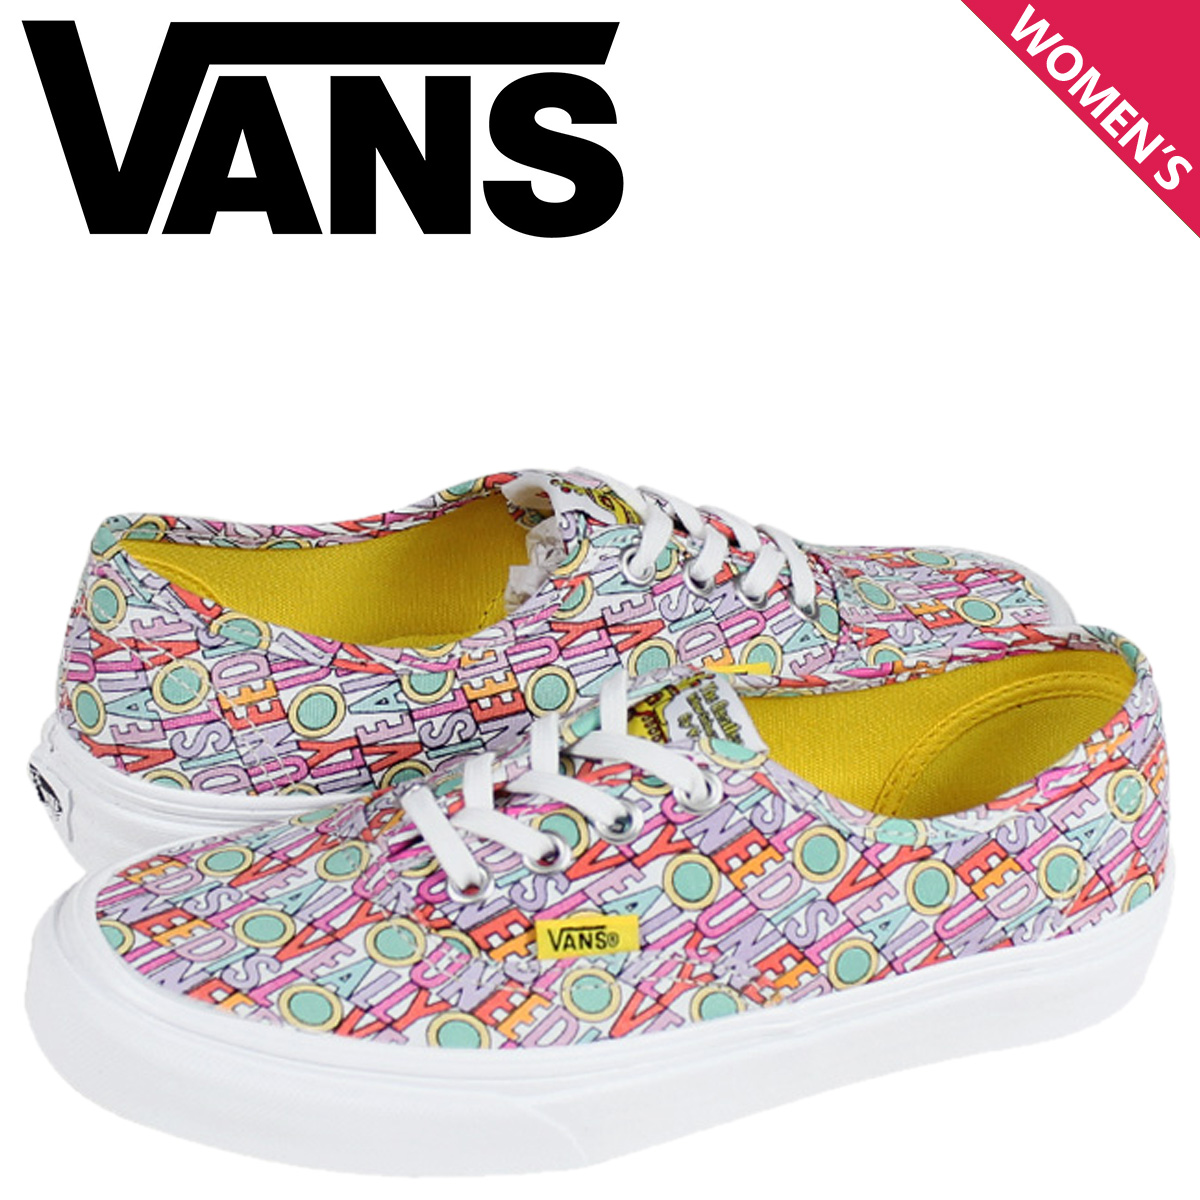 28a8b7f161fa85 Sugar Online Shop  Vans VANS women s AUTHENTIC BEATLES sneakers ...